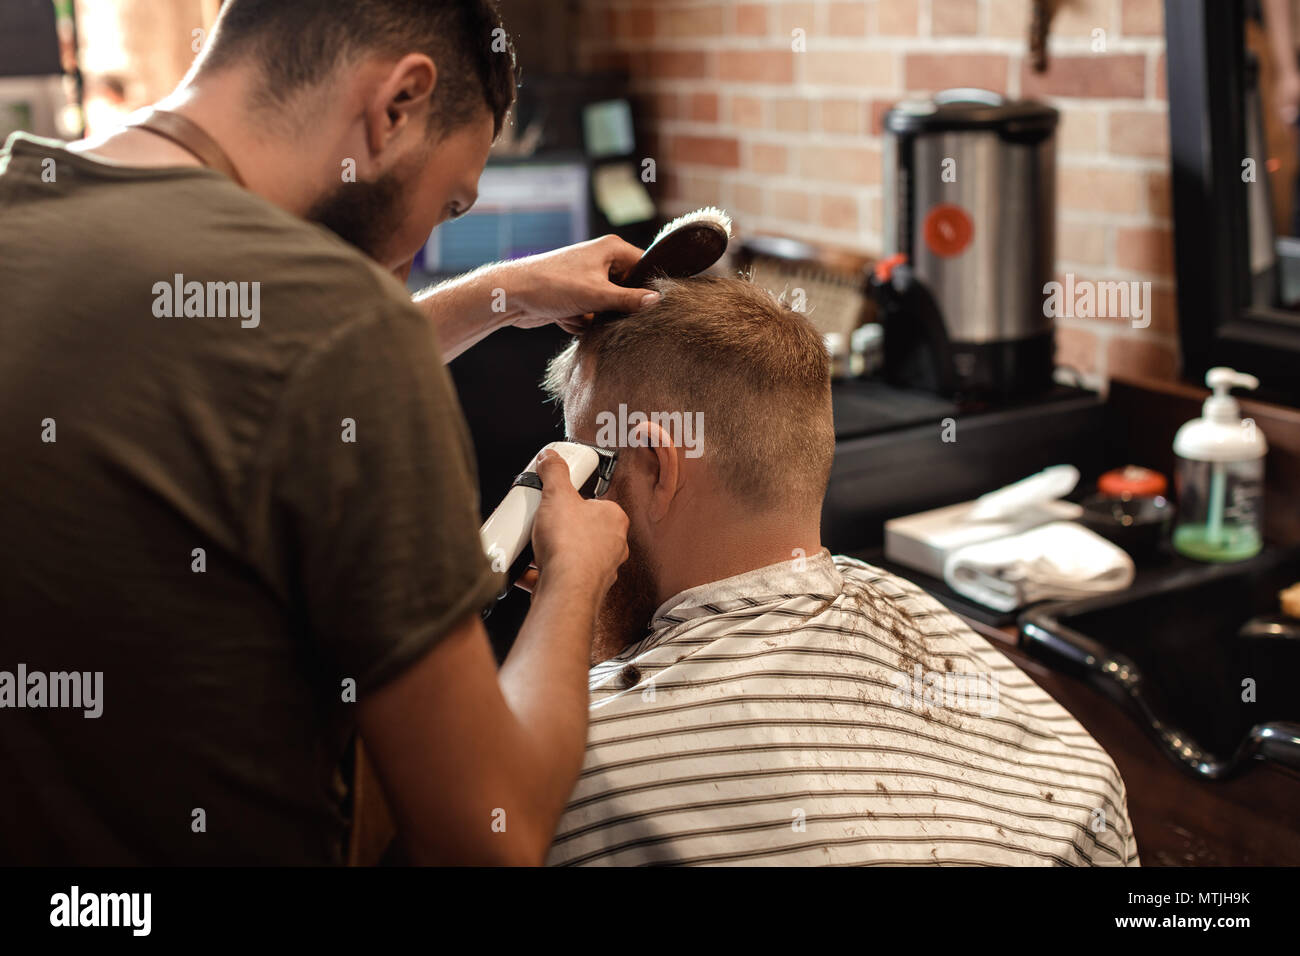 Salon de coiffure et barbu dans barber shop Photo Stock